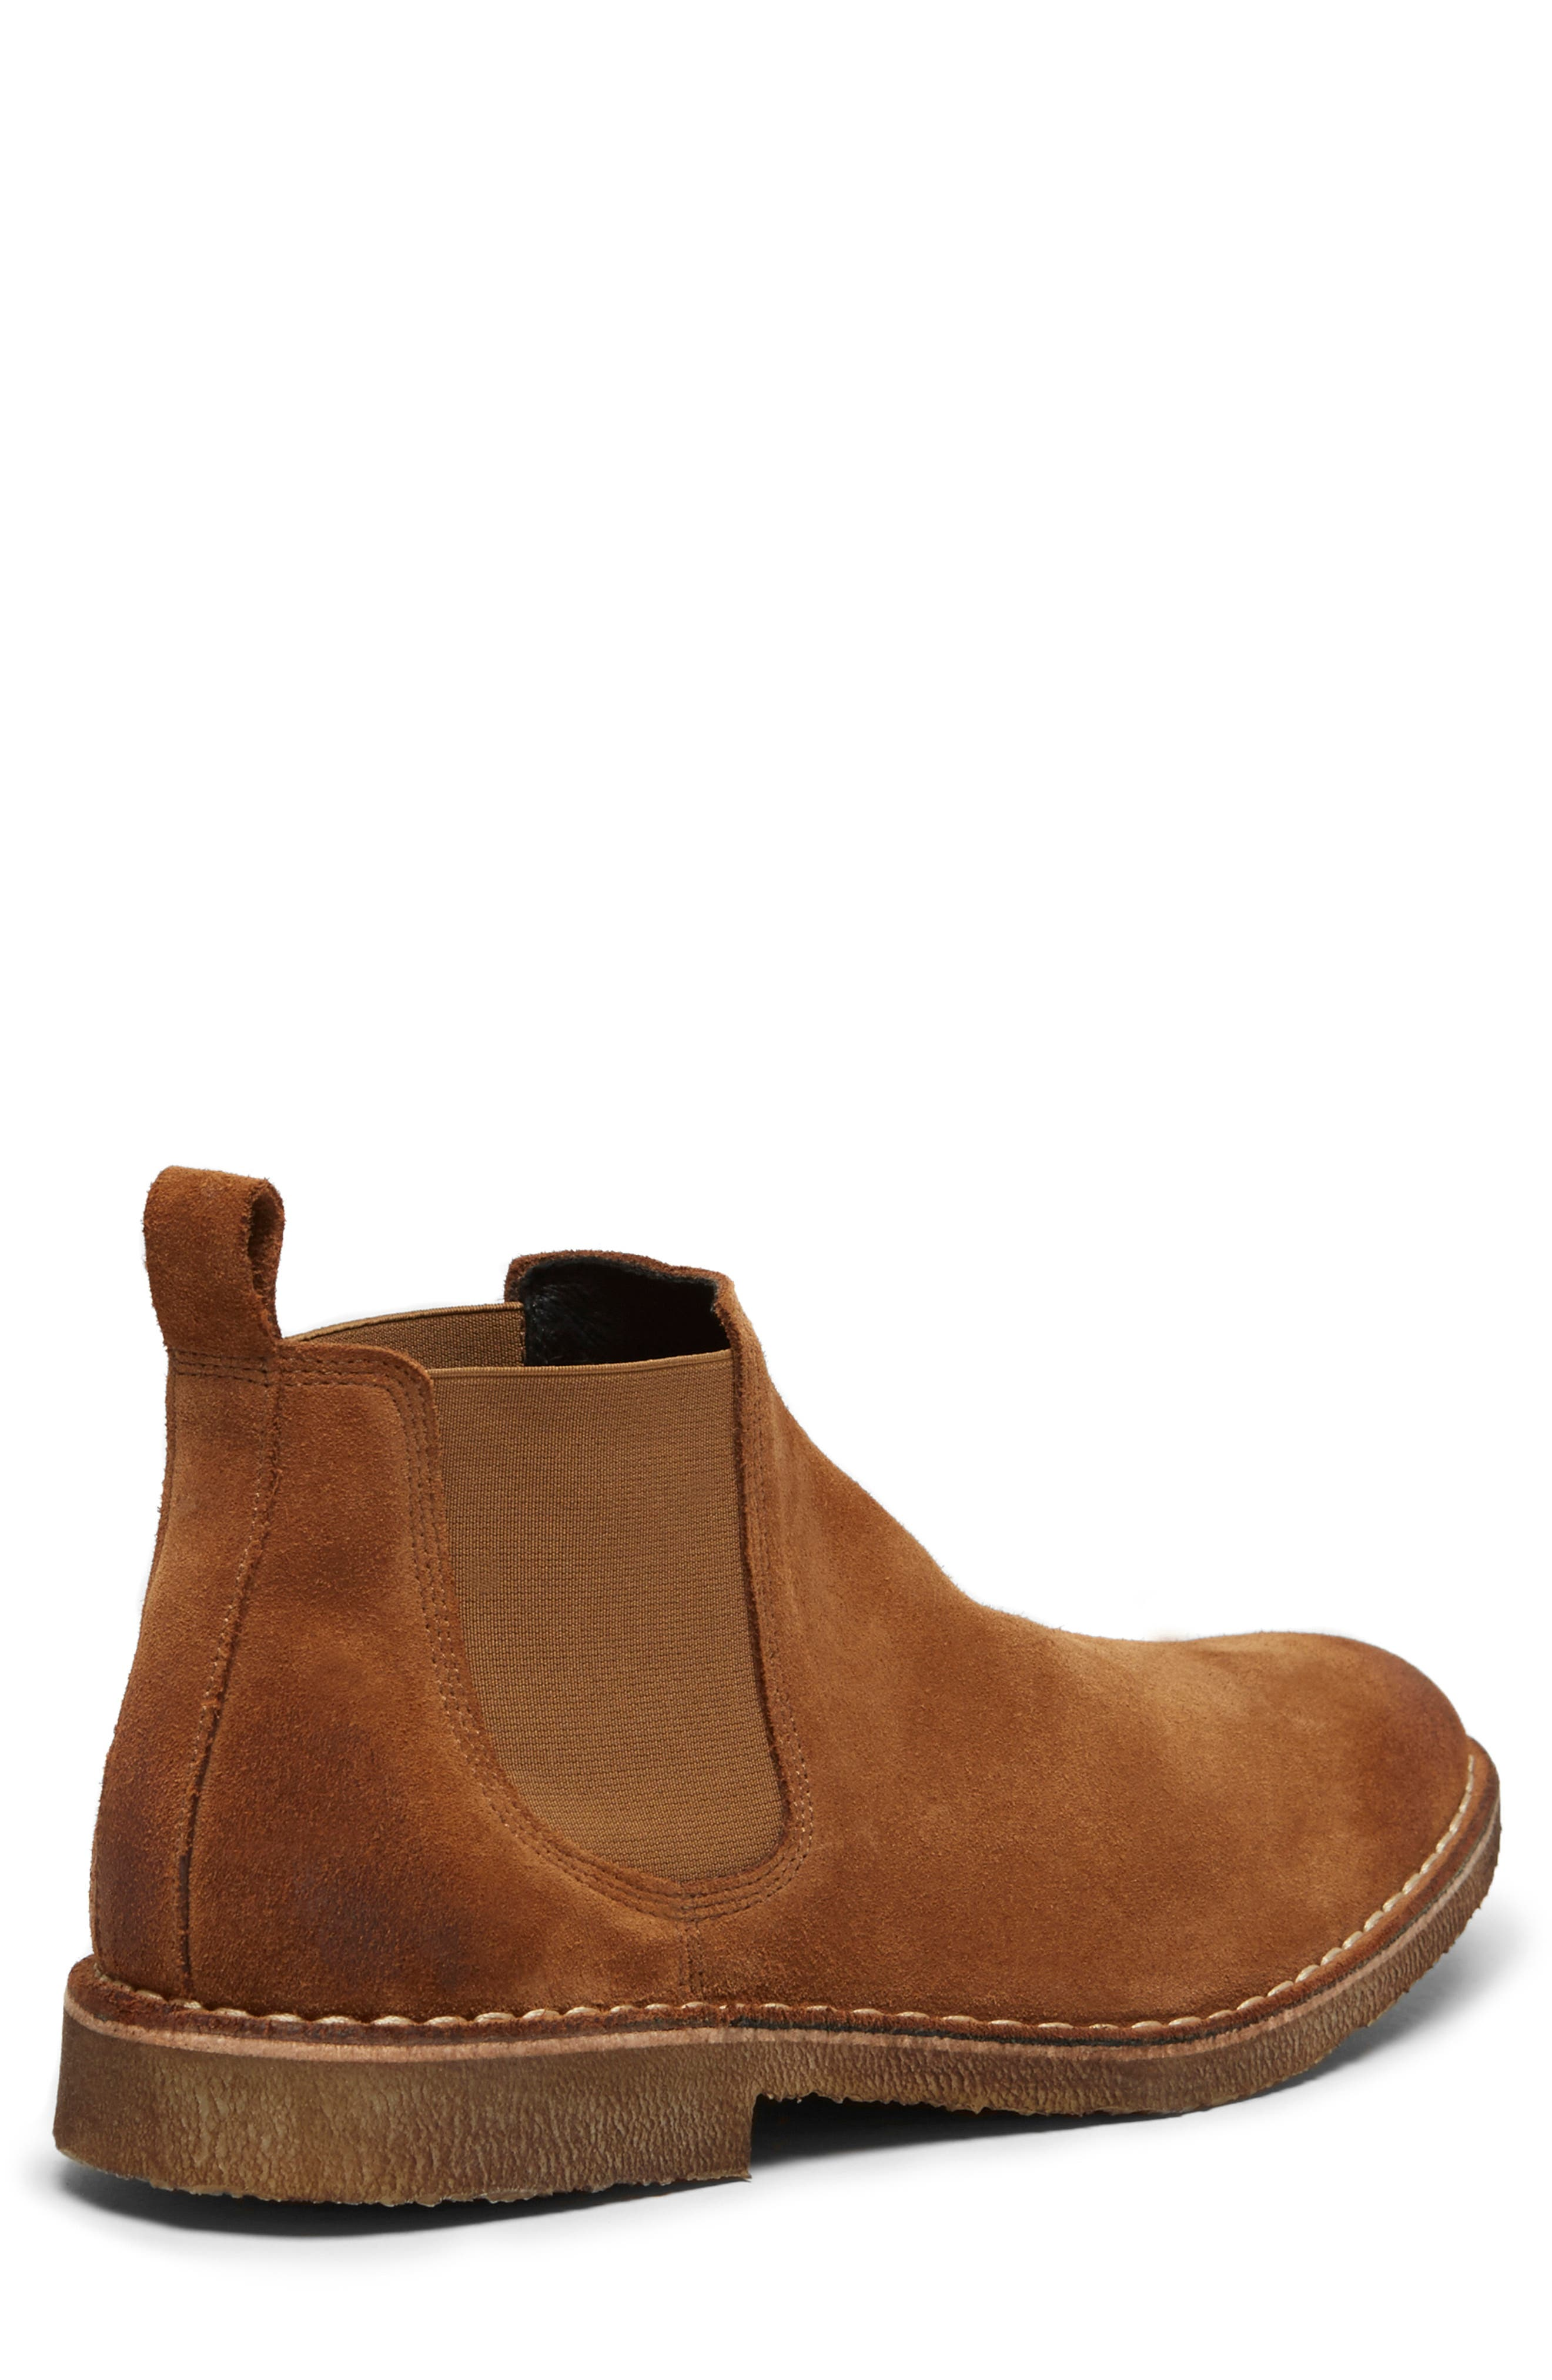 KENNETH COLE NEW YORK, Hewitt Chelsea Boot, Alternate thumbnail 4, color, RUST SUEDE